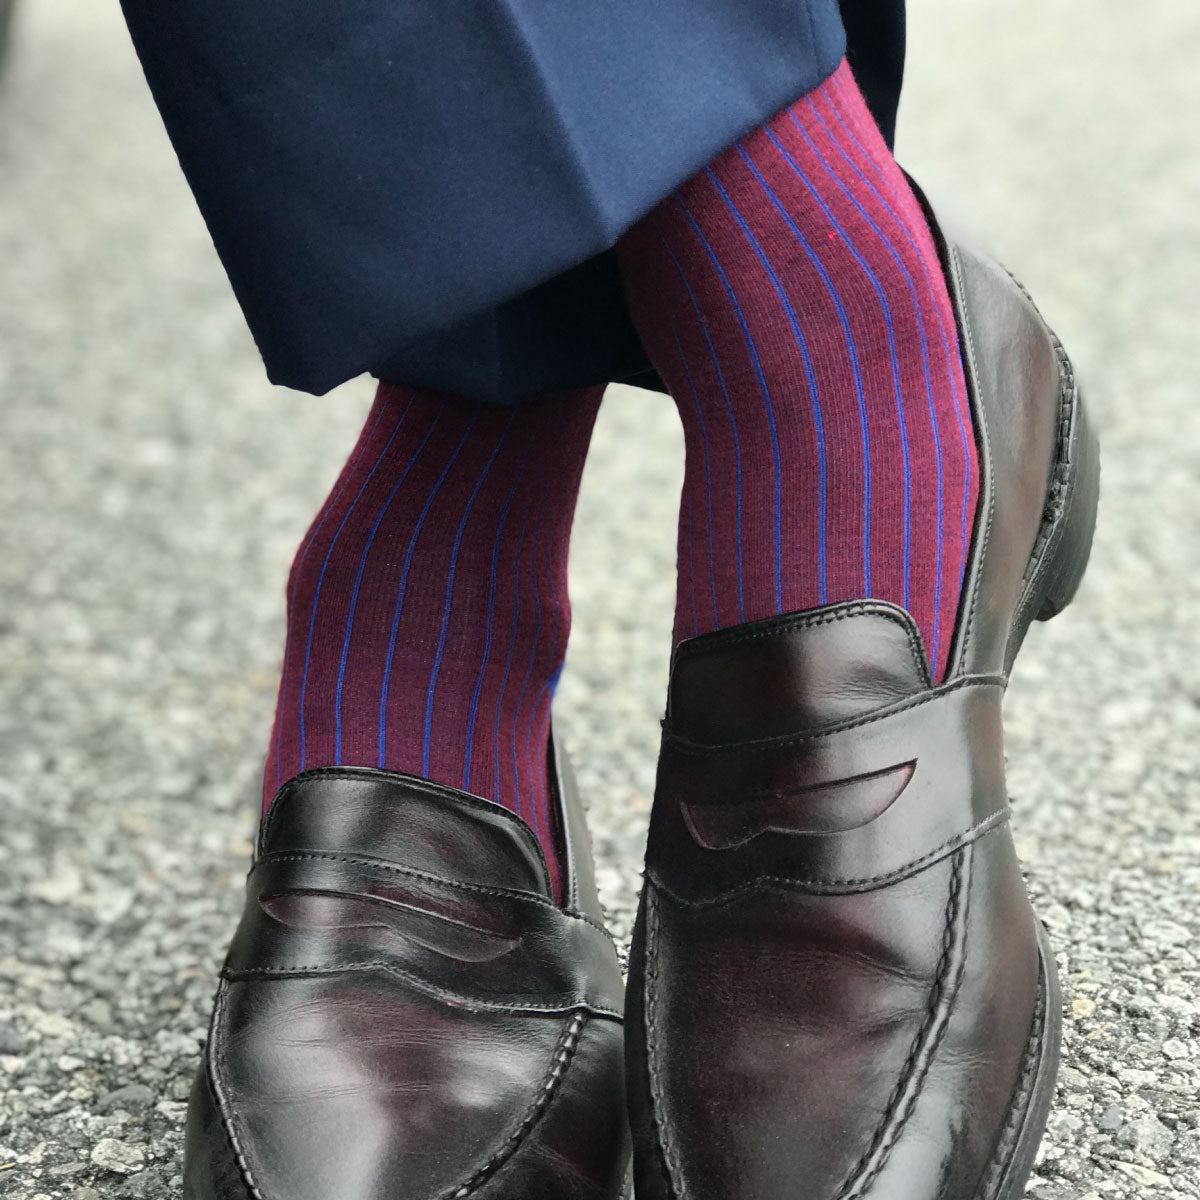 guy wearing blue and red pinstripe dress socks